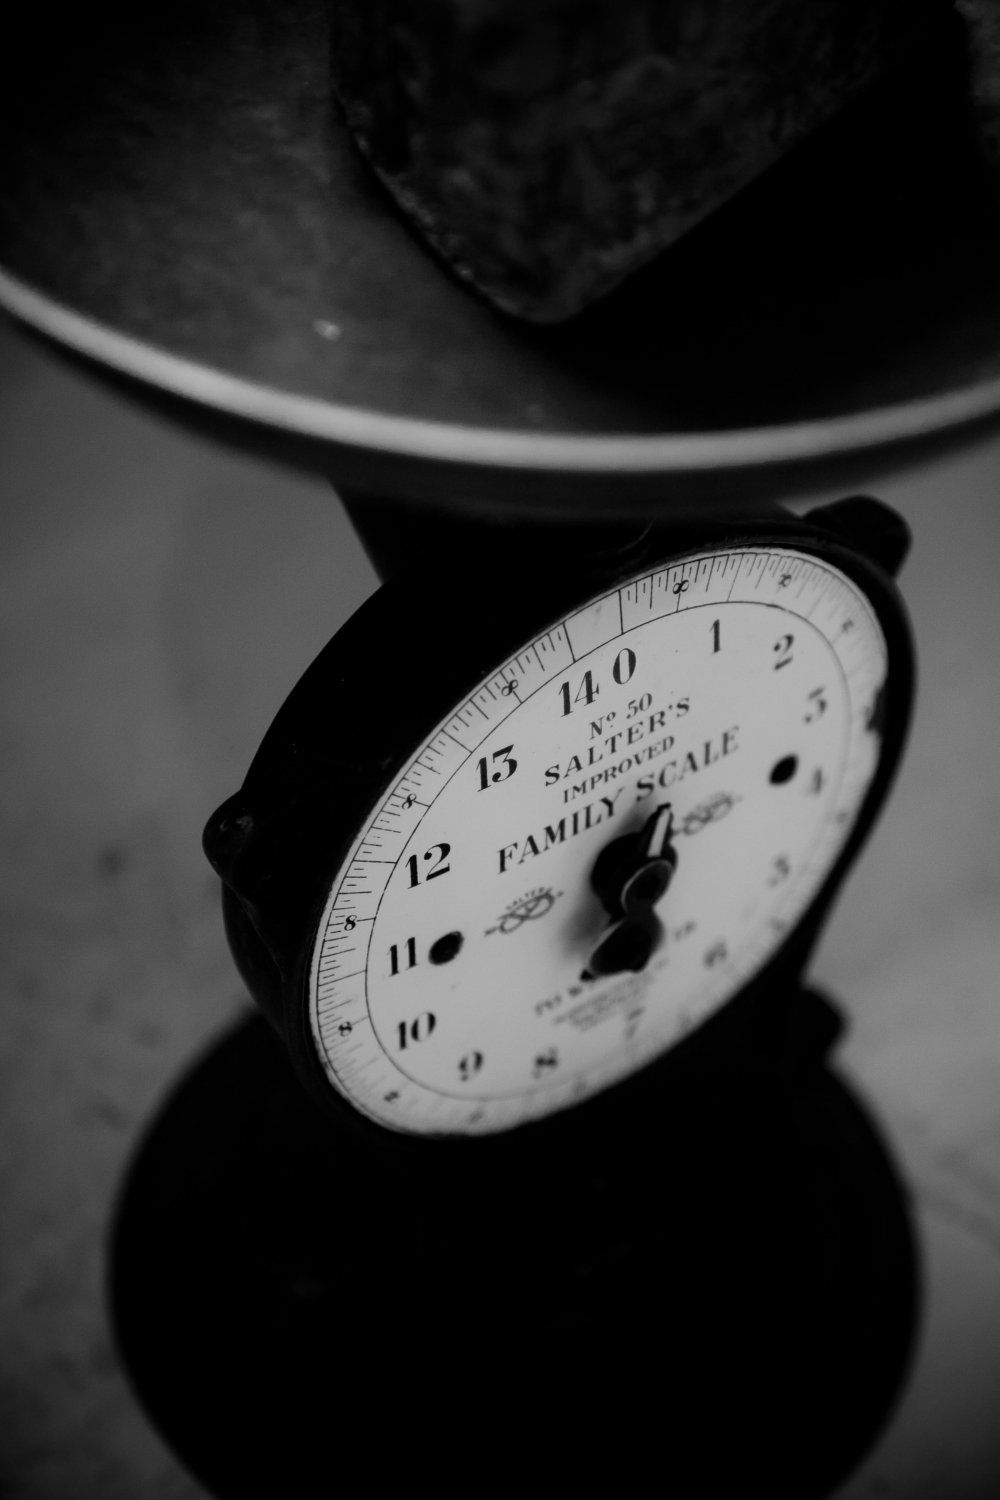 Gift For Kitchen Photo Of Vintage Scales Black And White Print Ideal For Kitchen